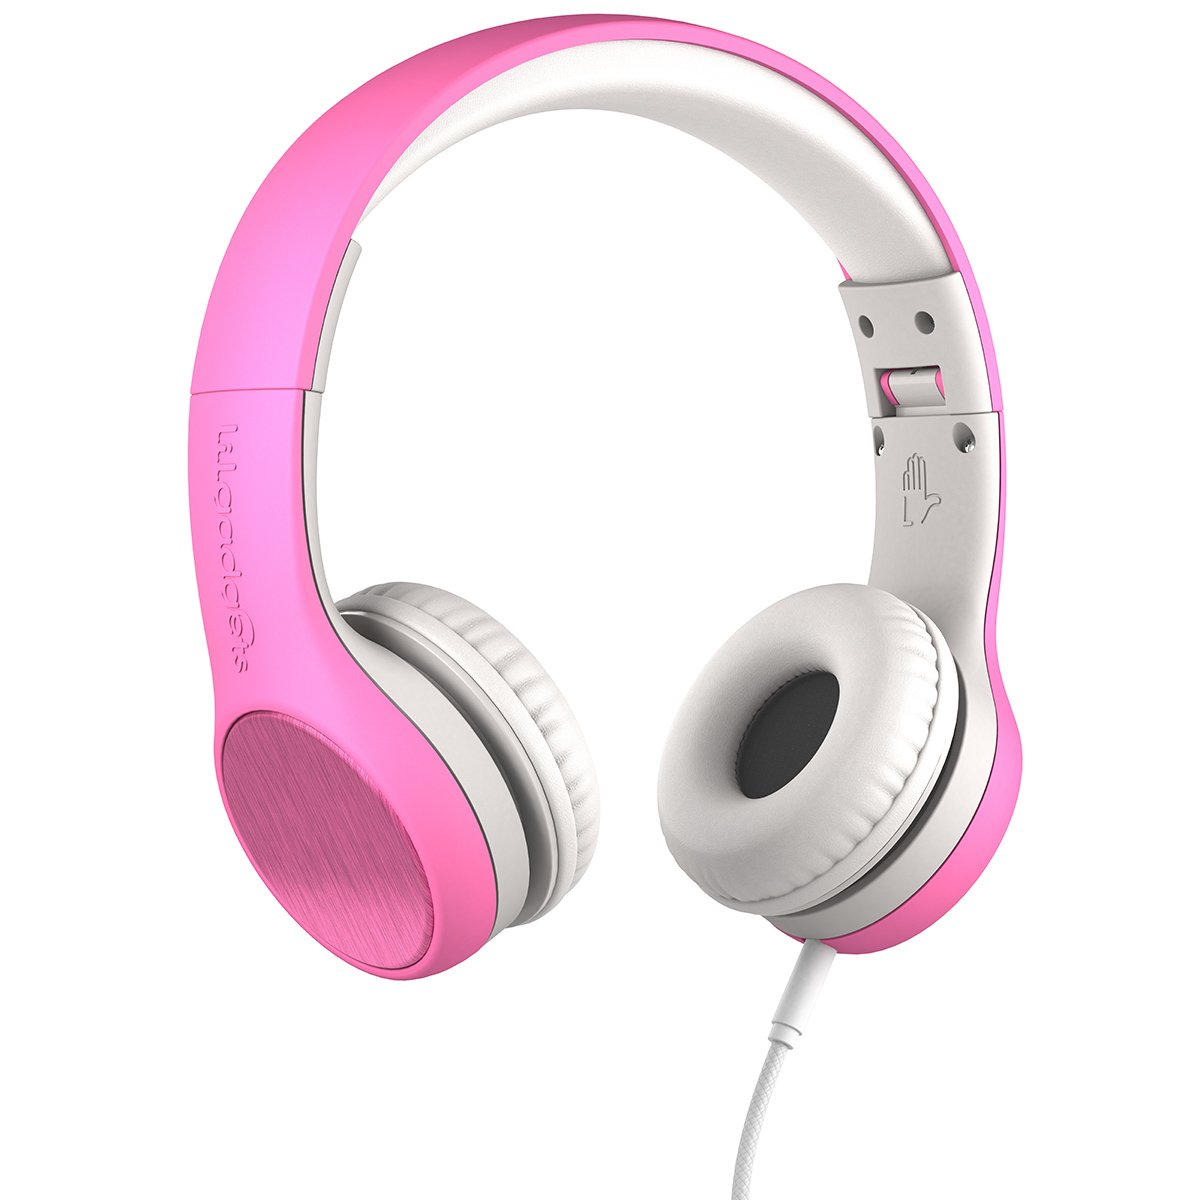 New! LilGadgets Connect+ Style Premium Volume Limited Wired Headphones with SharePort for Children/Kids (Pink)